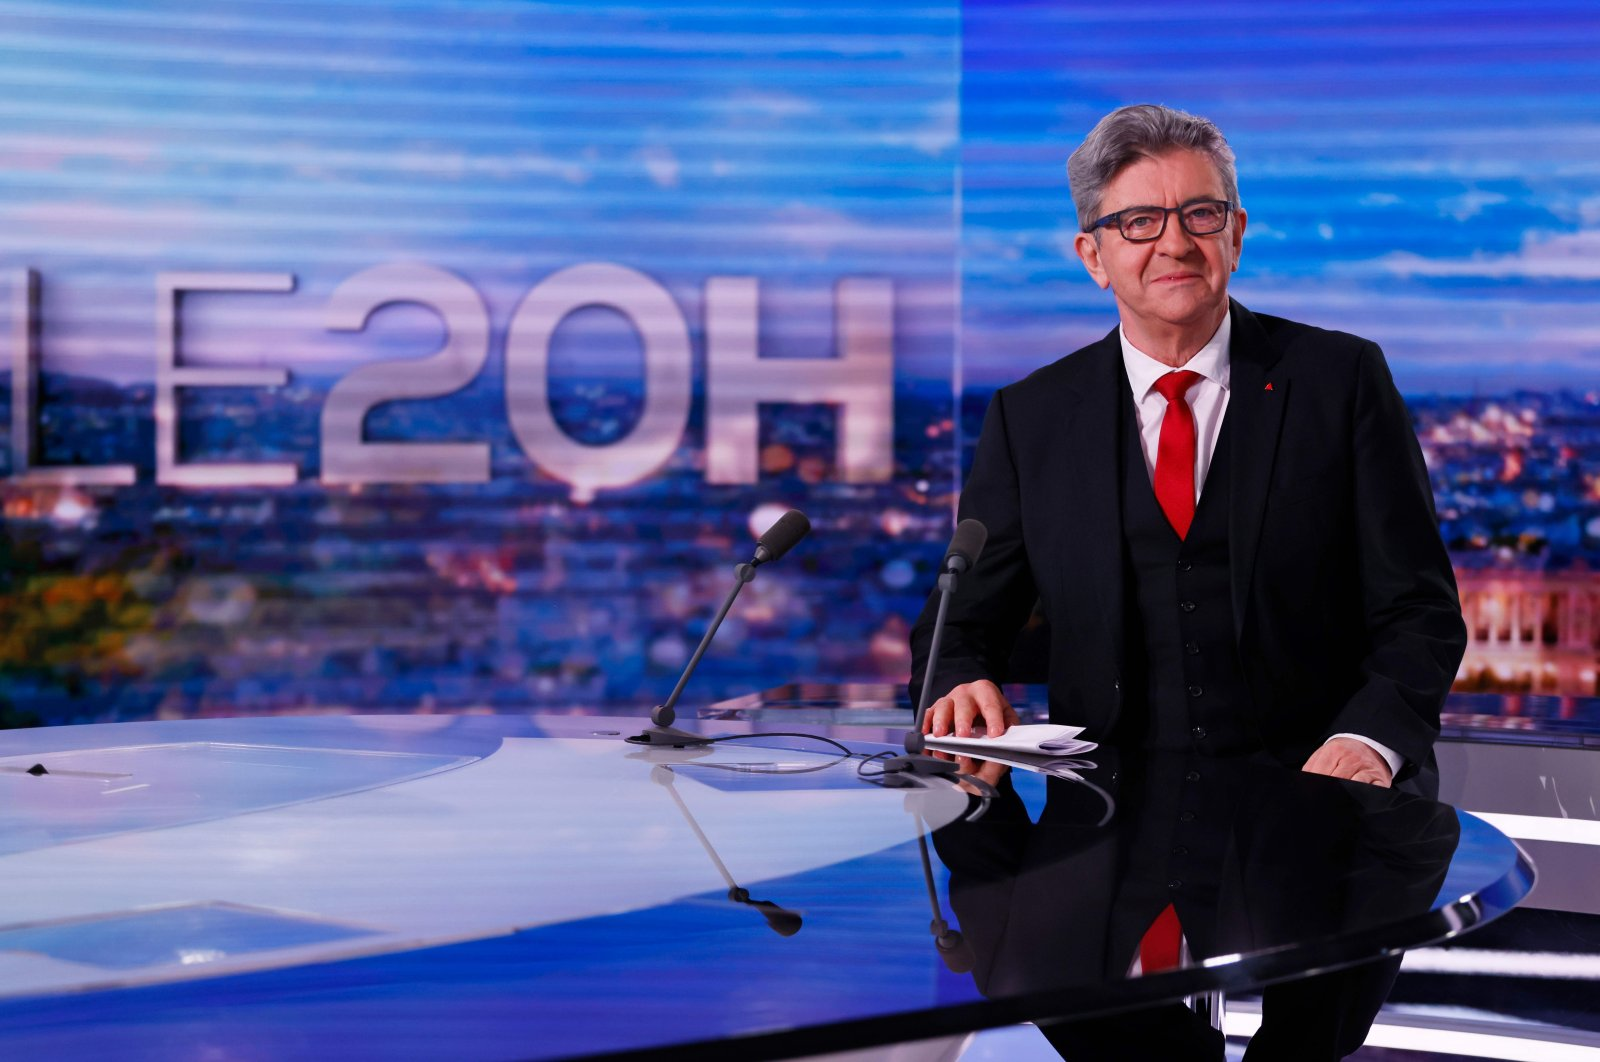 French leftist party La France Insoumise's (LFI) leader Jean-Luc Melenchon poses at the TF 1 studio prior to announcing his candidacy for the 2022 presidential election, in Paris, France, Nov. 8, 2020. (AFP Photo)